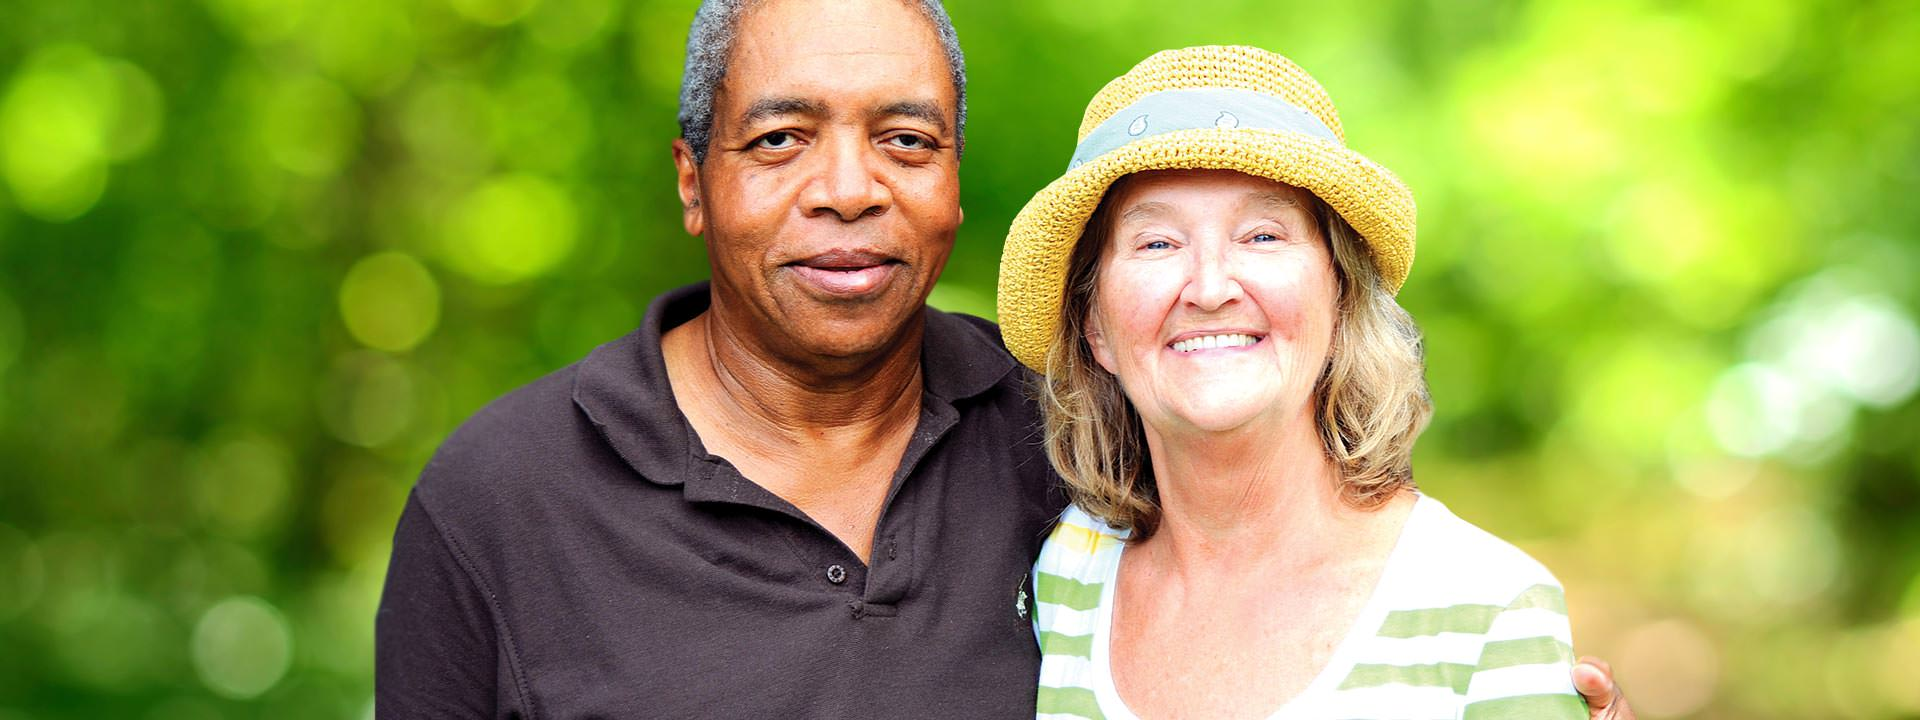 Smiling African American man and white woman blurry green background